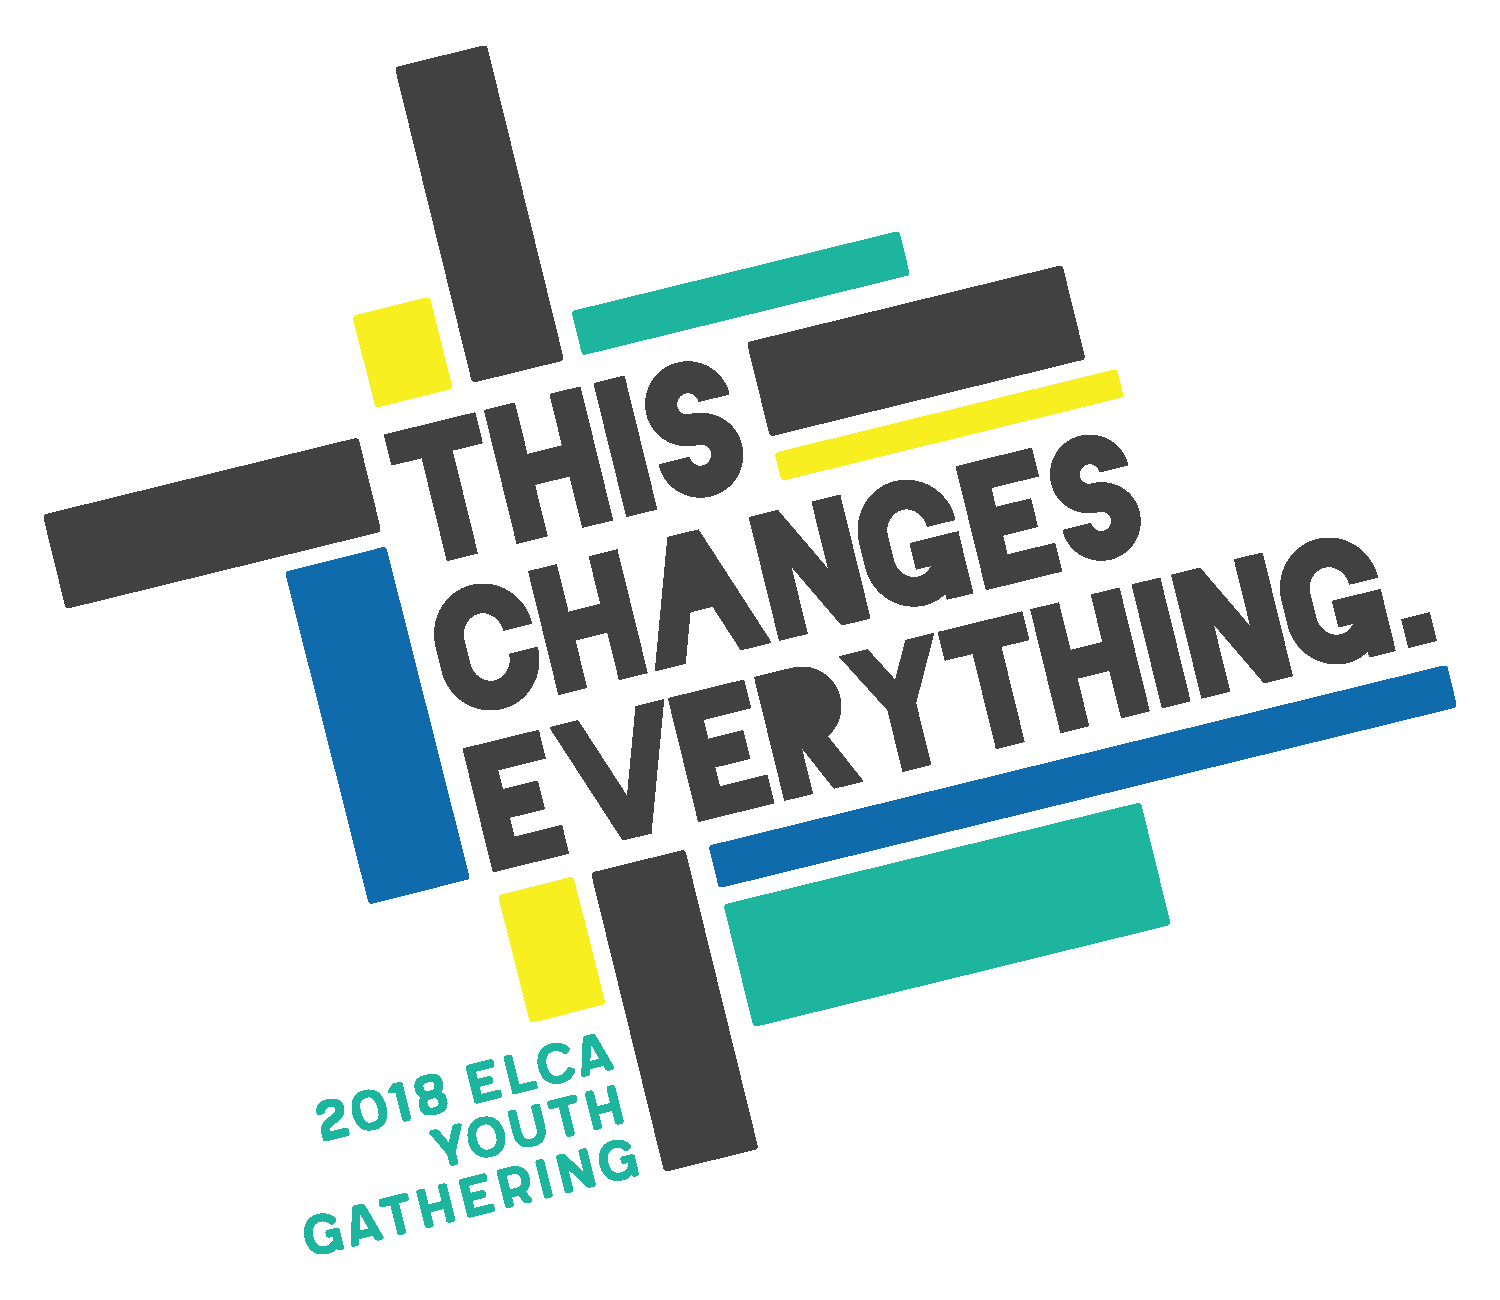 2018 ELCA Youth Gathering Color Logo